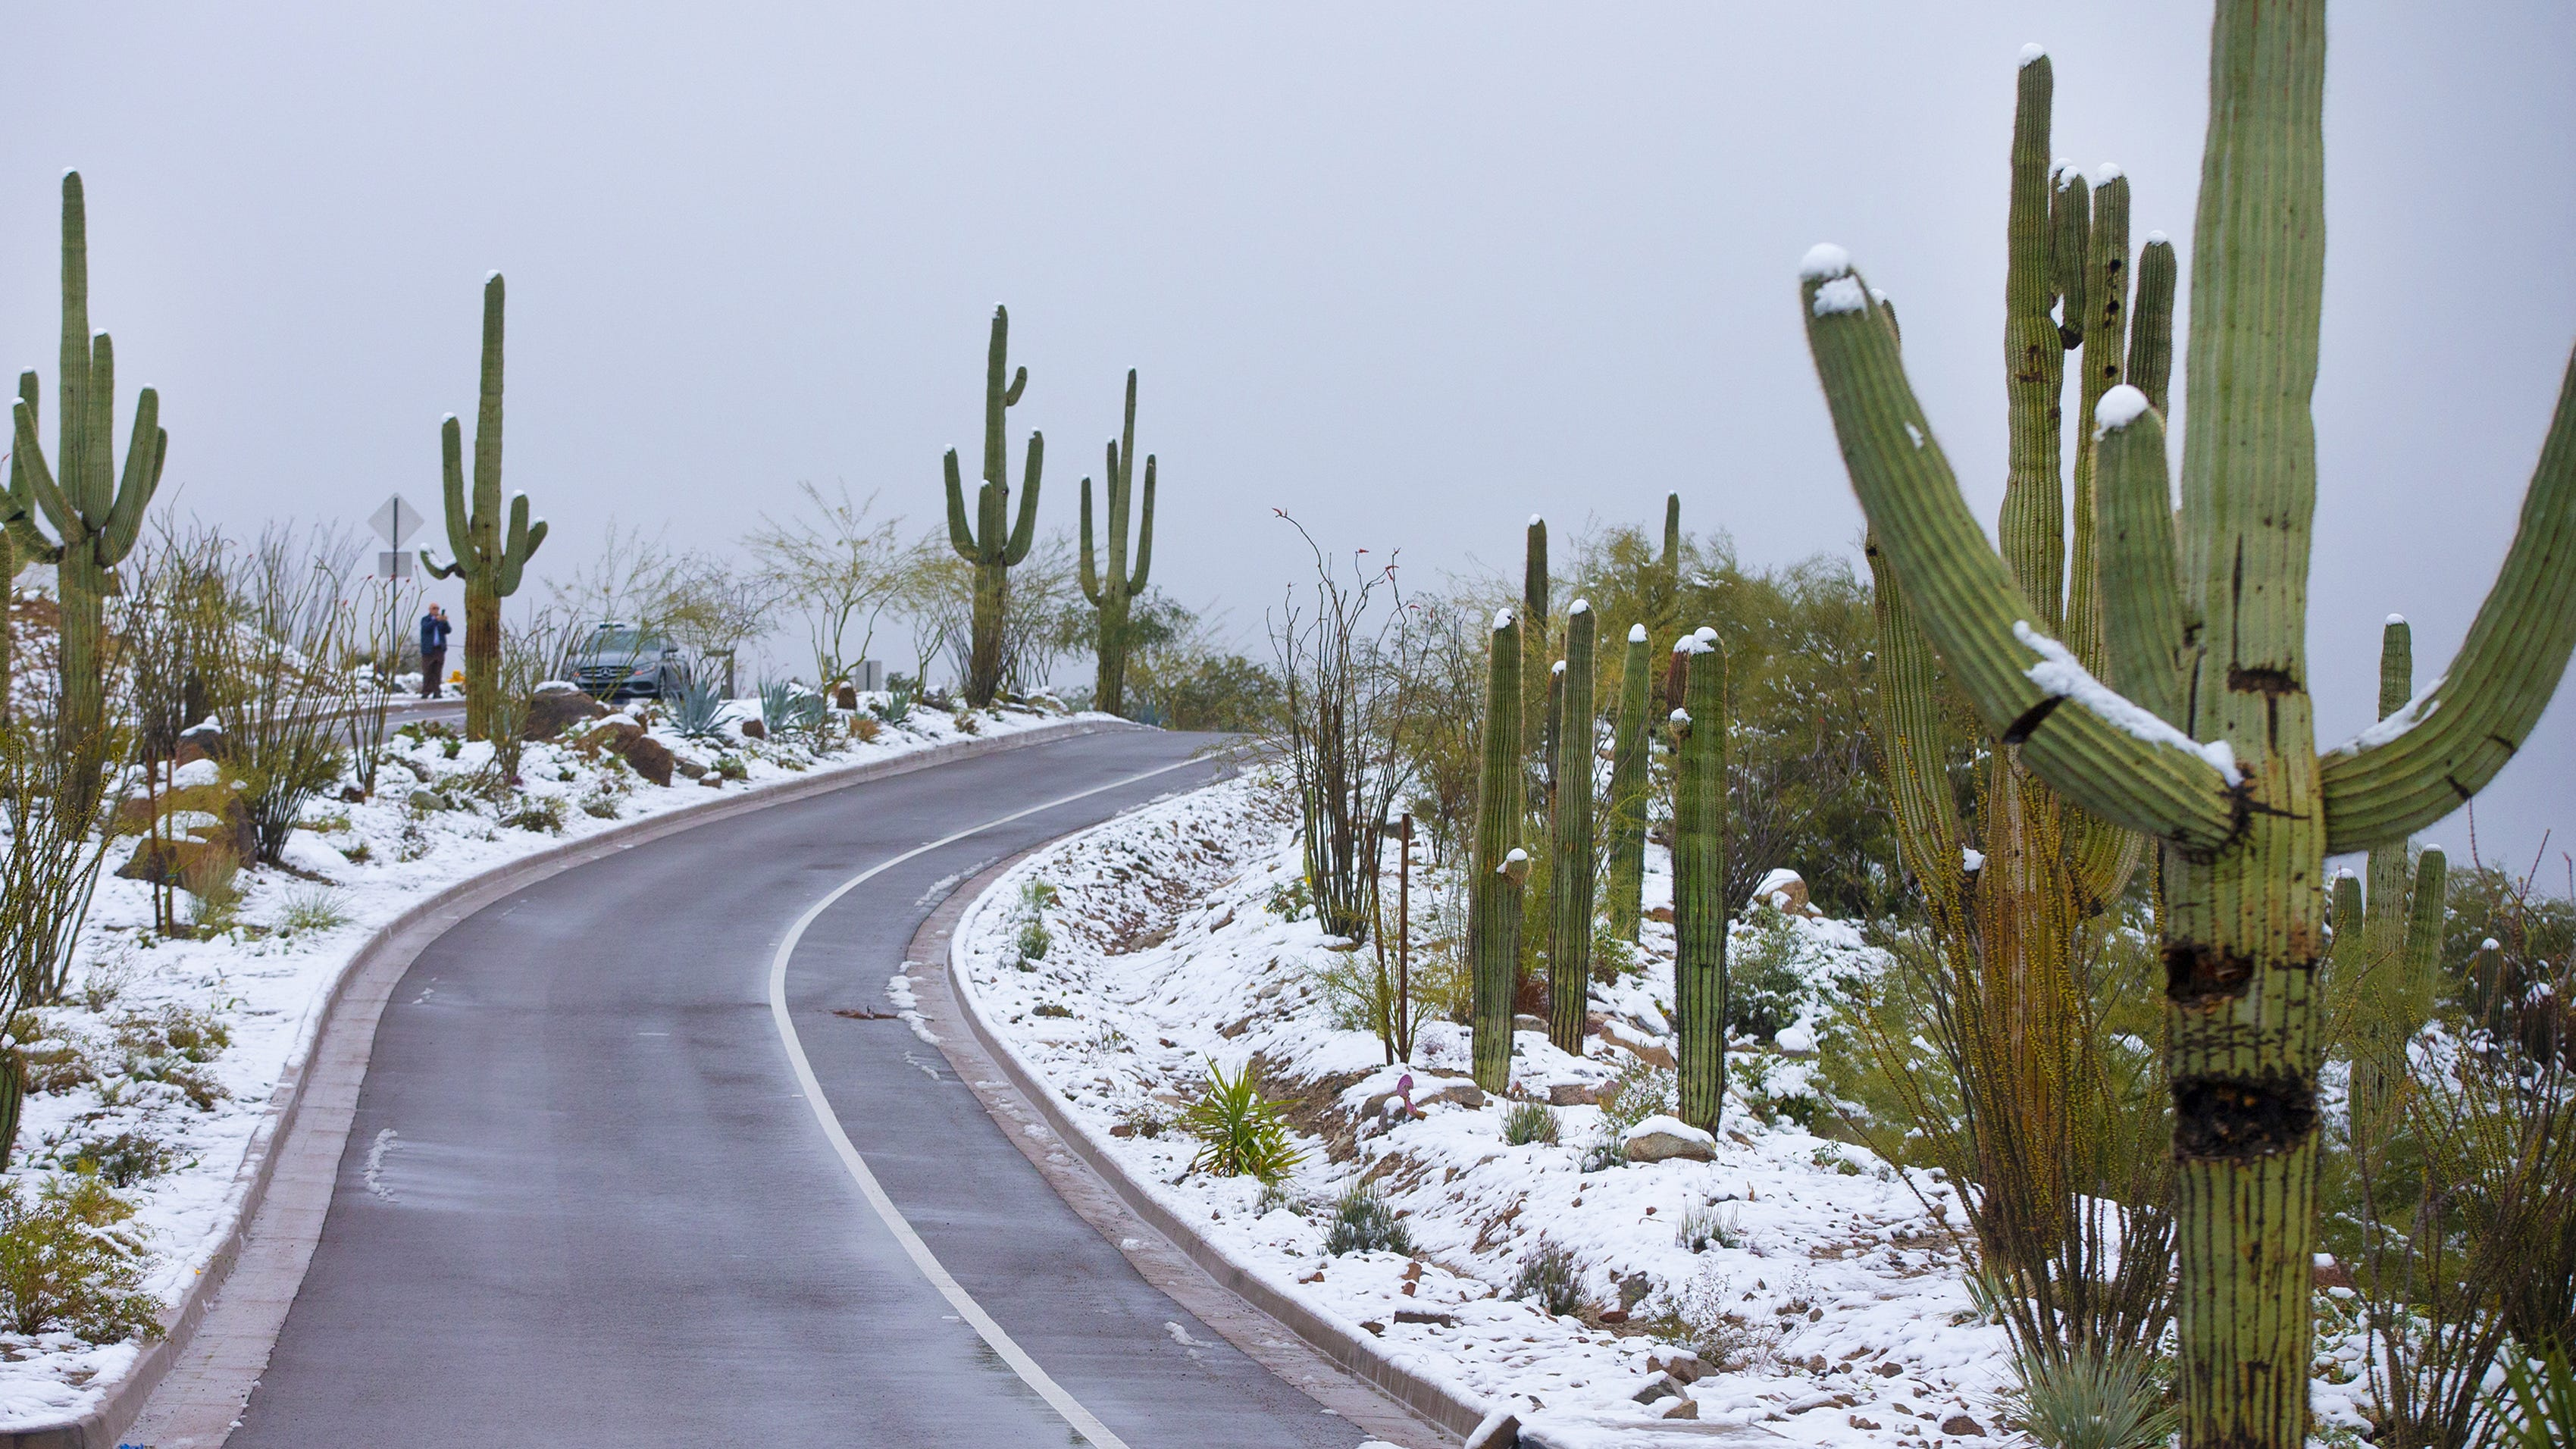 Spring's arrival ushers out 2nd coldest Phoenix winter since 1981